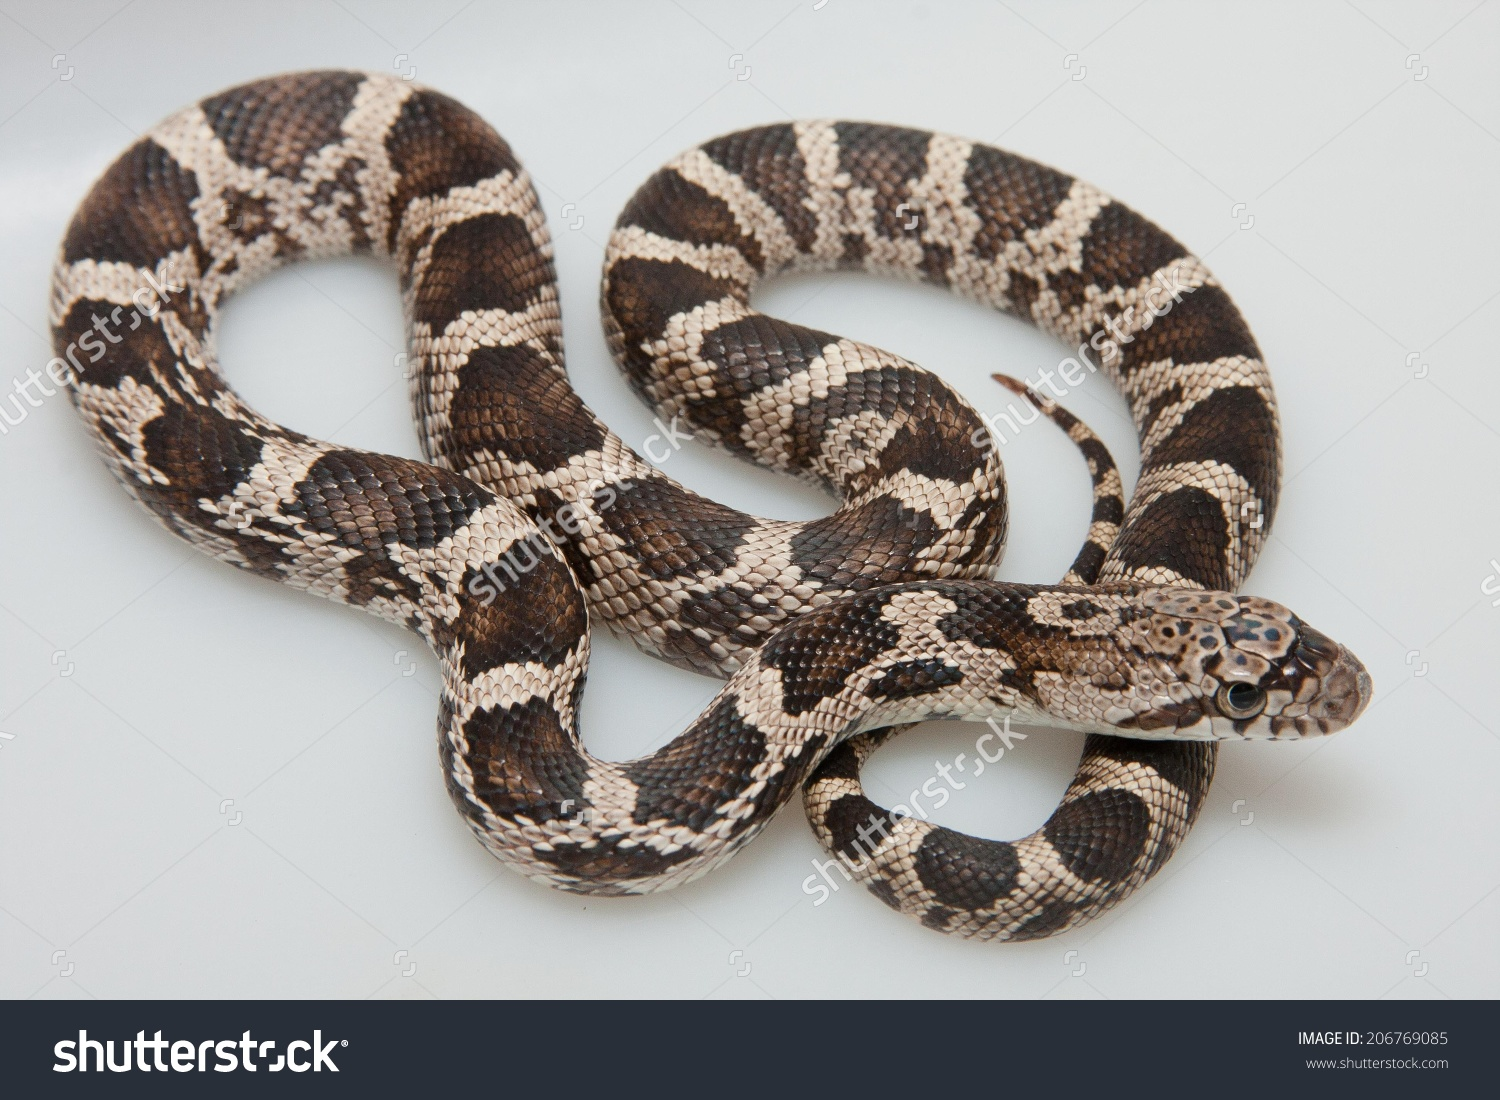 Captive Bred Hybrid Black Ratsnake Elaphe Stock Photo 206769085.